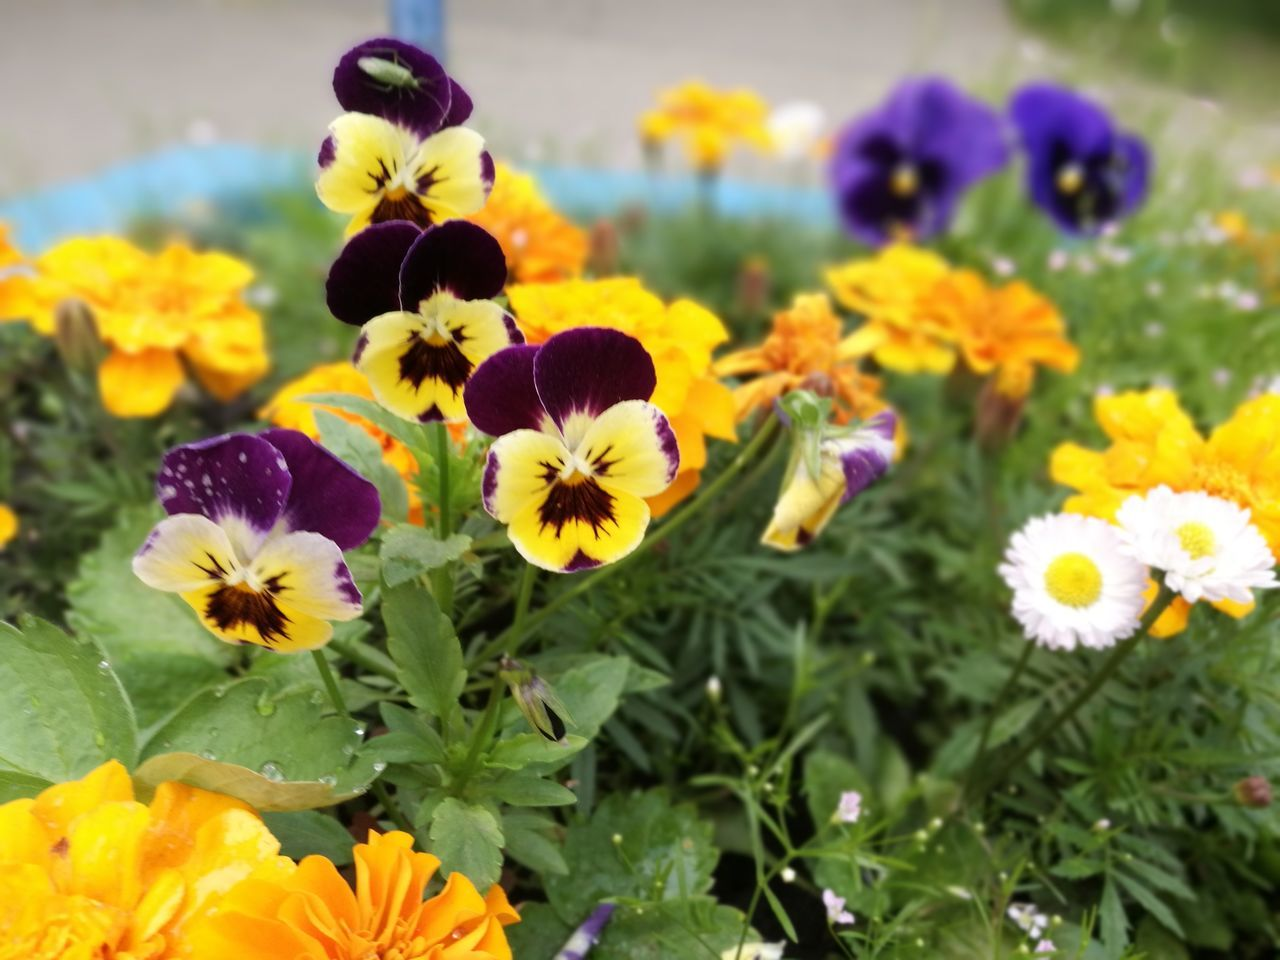 flower, petal, fragility, freshness, beauty in nature, flower head, nature, growth, yellow, plant, blooming, no people, pansy, close-up, outdoors, day